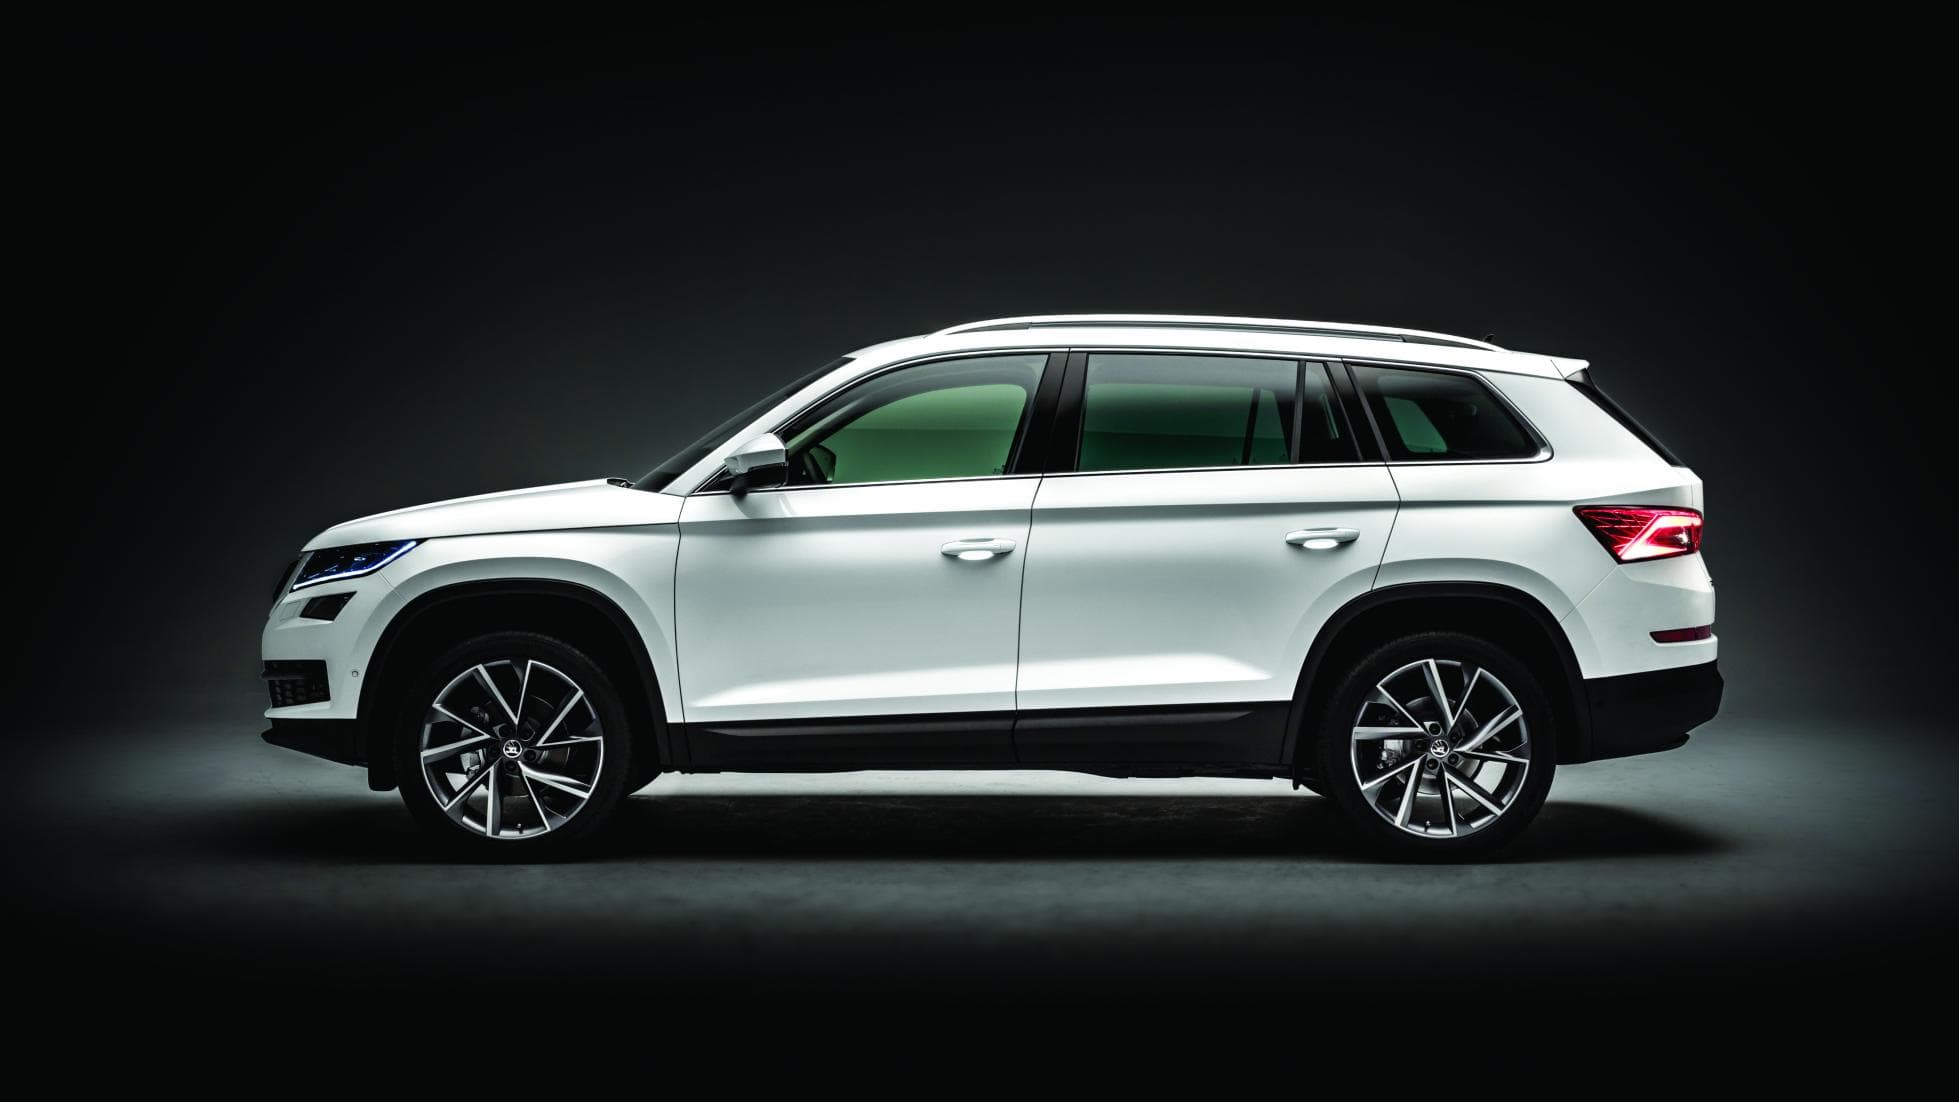 Skoda Kodiaq Wallpapers